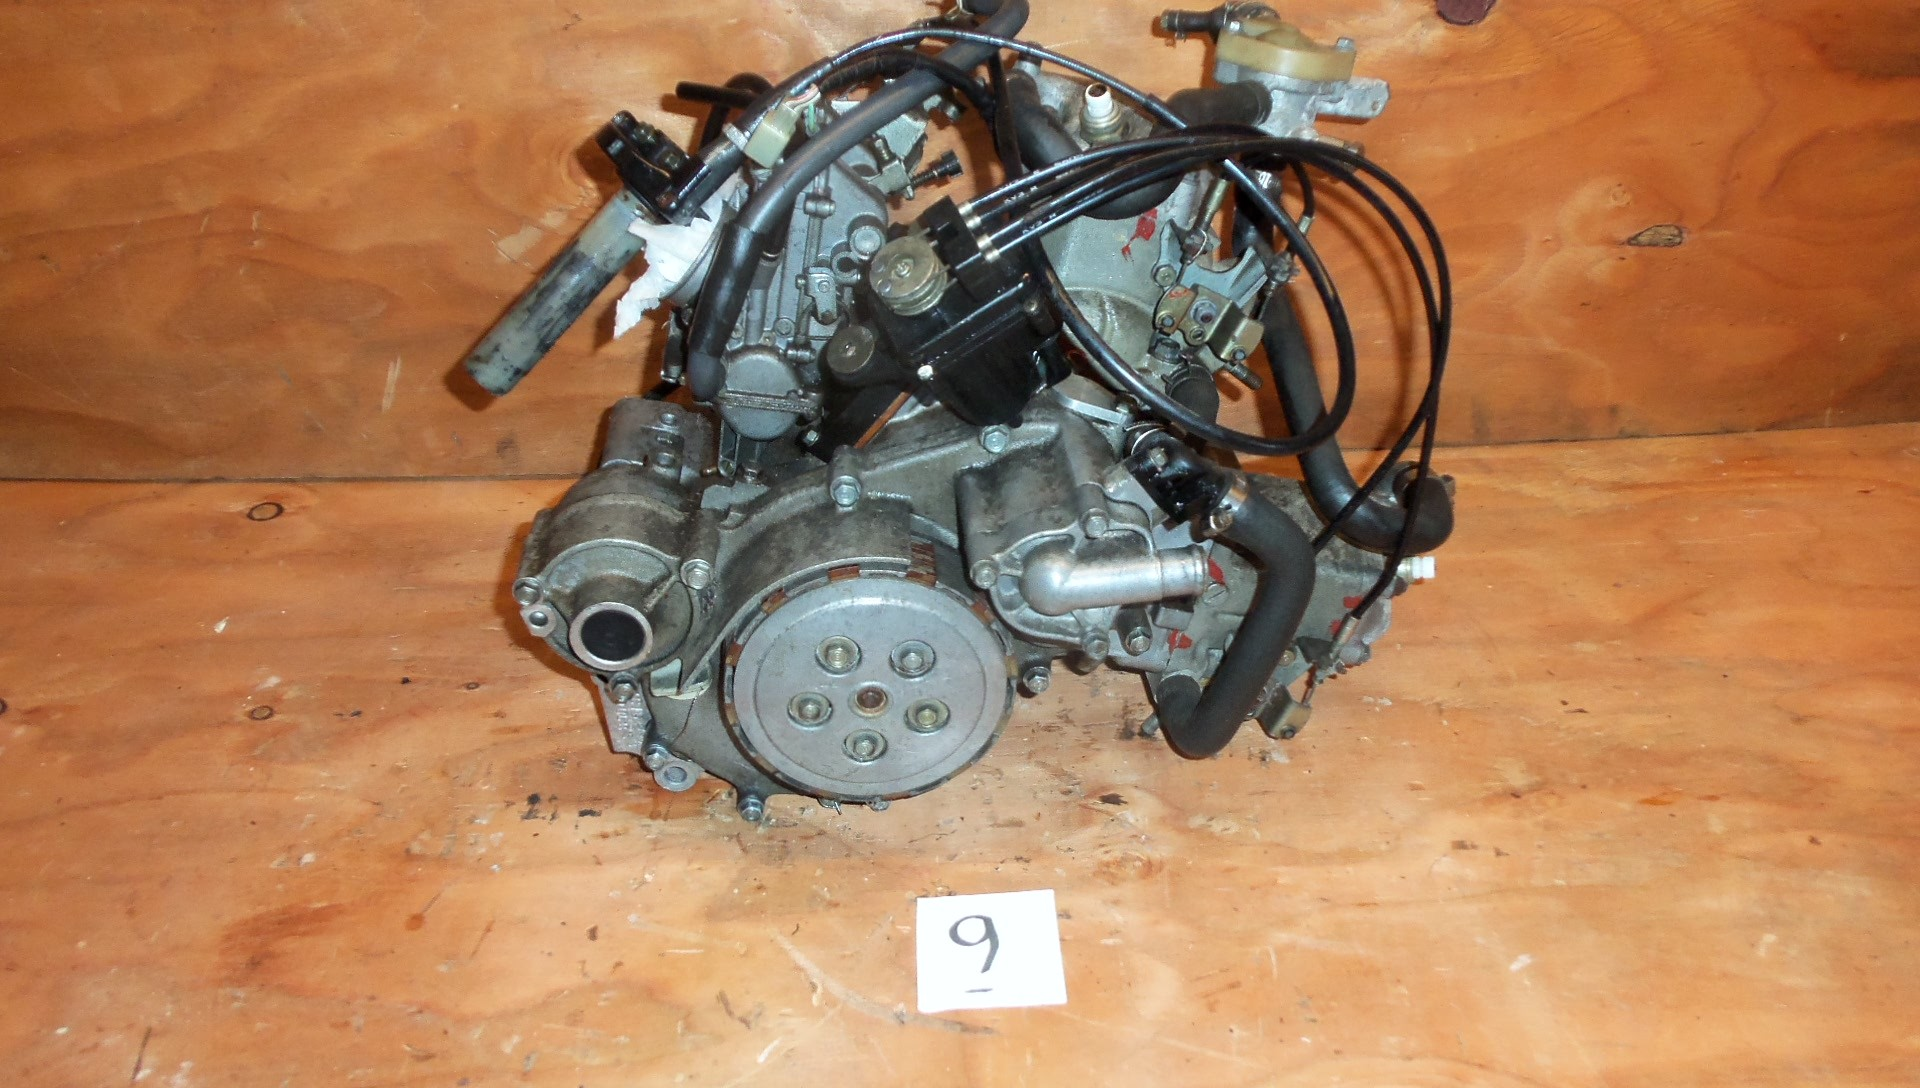 nsr 250 parts honda mc16 nsr250 hrc f3 race engine